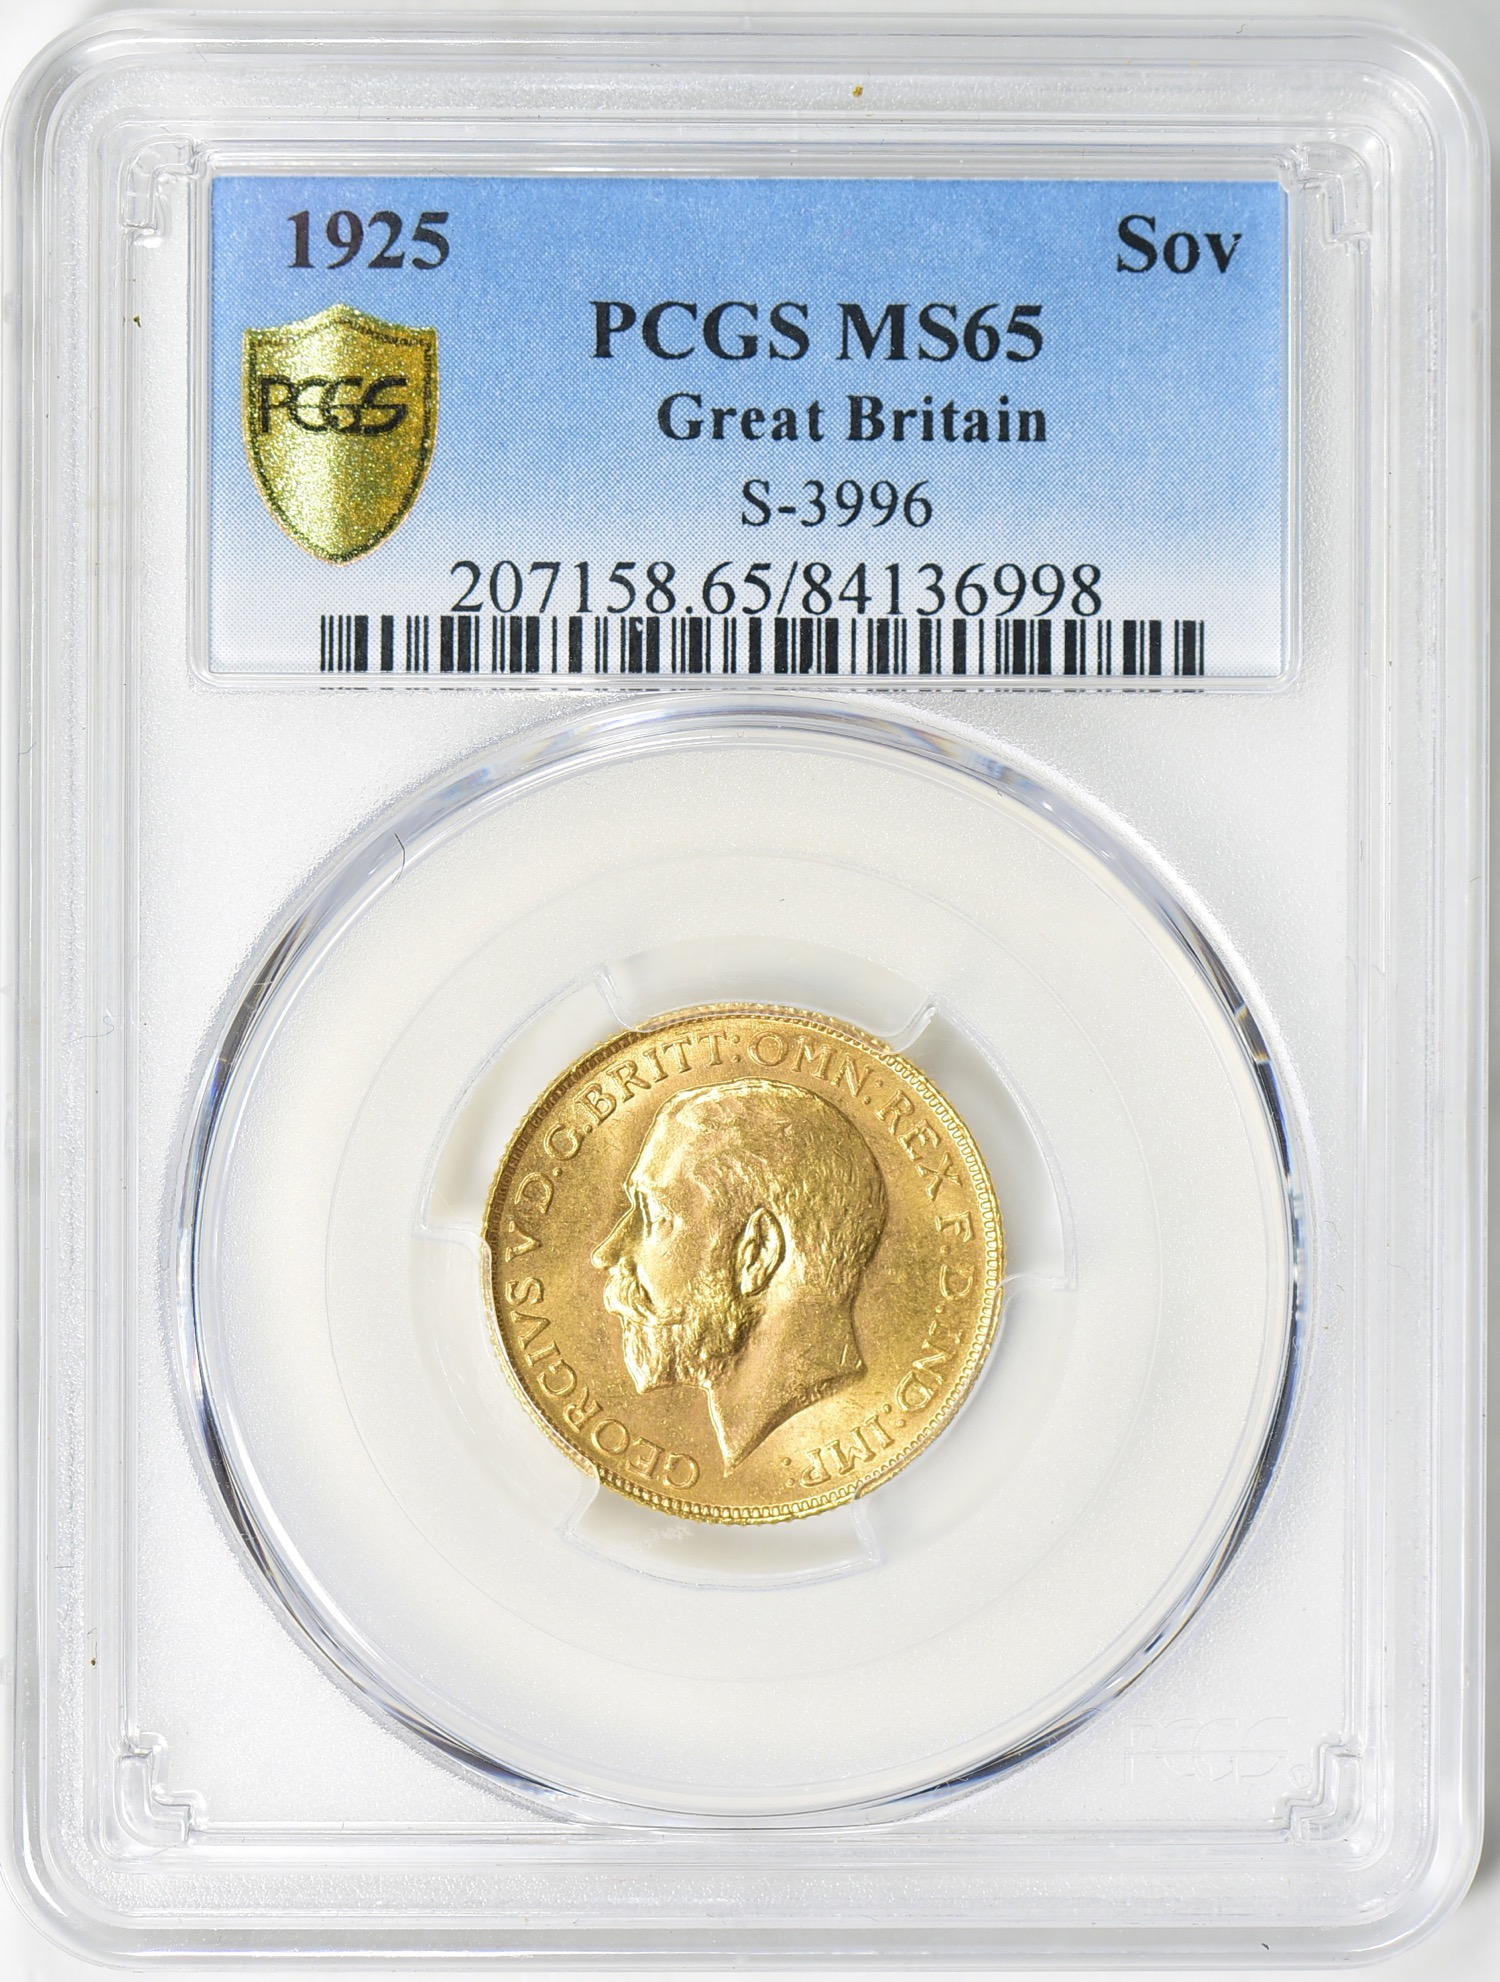 1925 George V Sovereign MS65 - Acquired 8.4.19 GreatCollections. I have wanted a sovereign for some time and noticed this one going for less than spot! Many people trade these like bullion but I think it belongs in the world of numismatics.